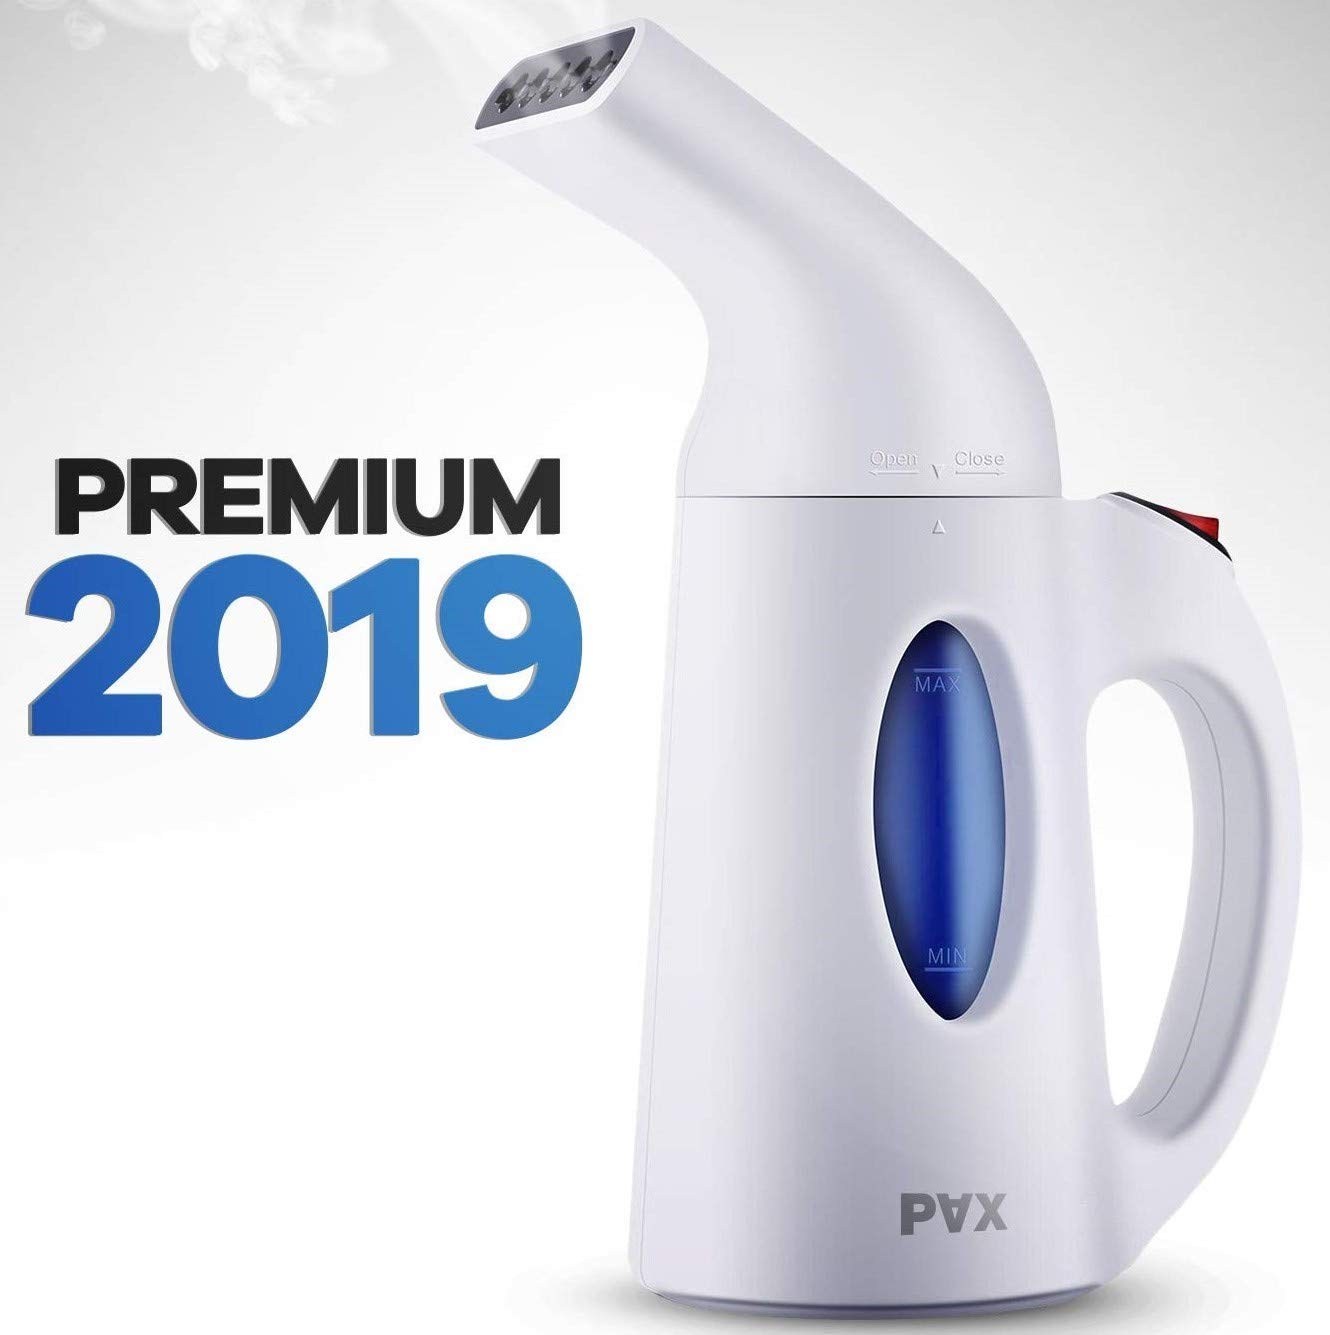 34bfd7845a1bd Pax Steamer For Clothes, Travel and Home Handheld Garment Steamer, 60  Seconds Heat-Up, Fabric Steamer With Automatic Shut-off Safety Protection,  ...